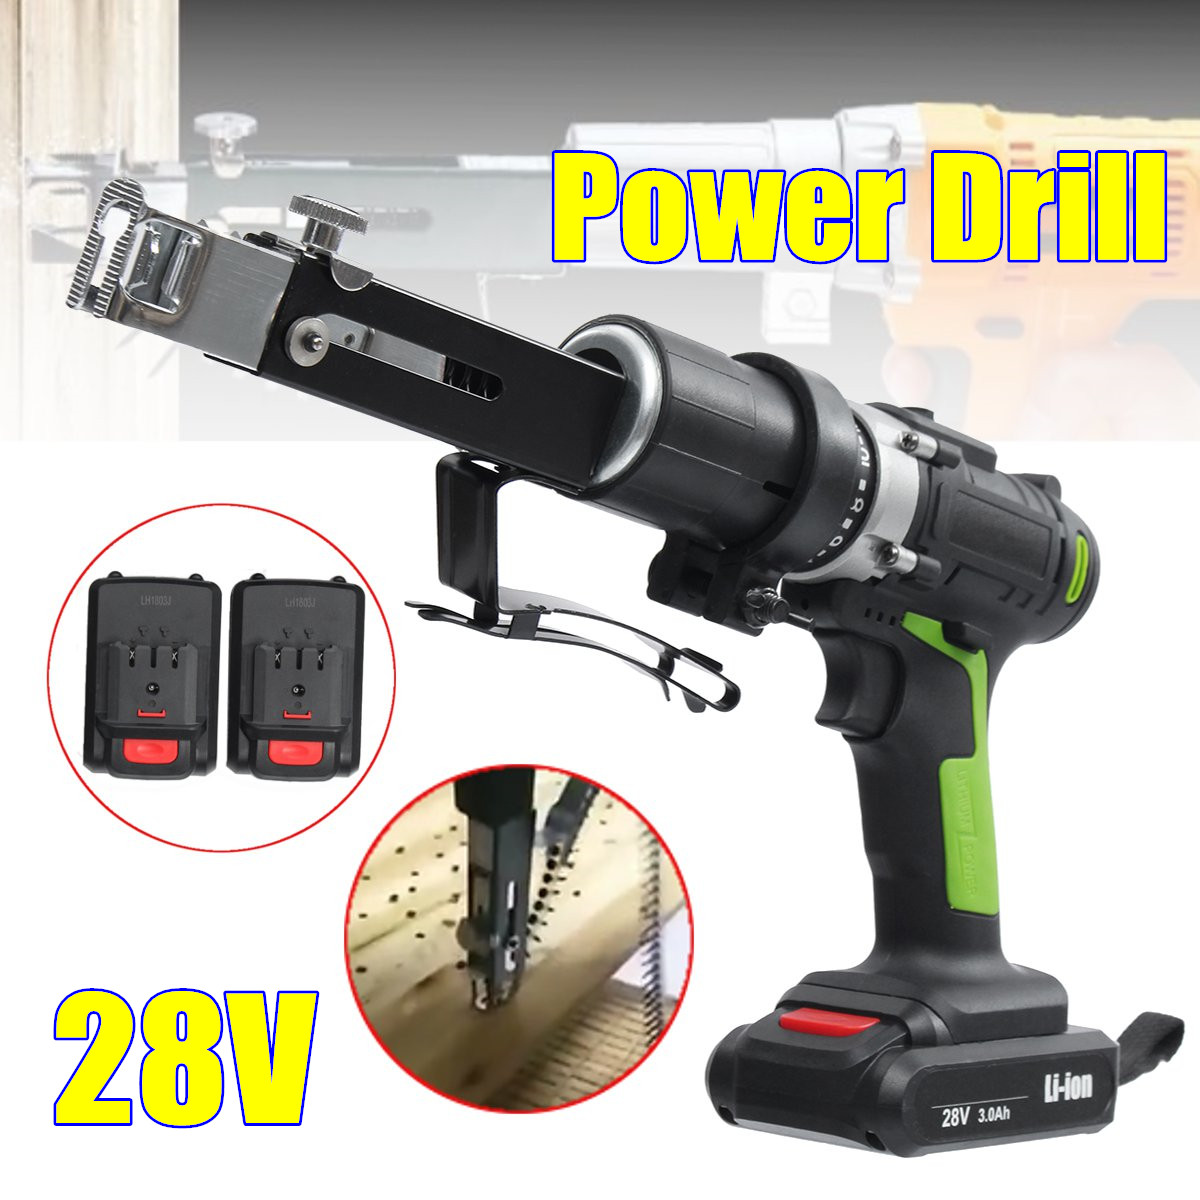 28V Max Electric Screwdriver Cordless Drill Mini Wireless Power Driver DC Lithium-Ion Battery With 2 Lithium Battery 18v dc lithium ion battery cordless drill driver power tools screwdriver electric drill with battery included